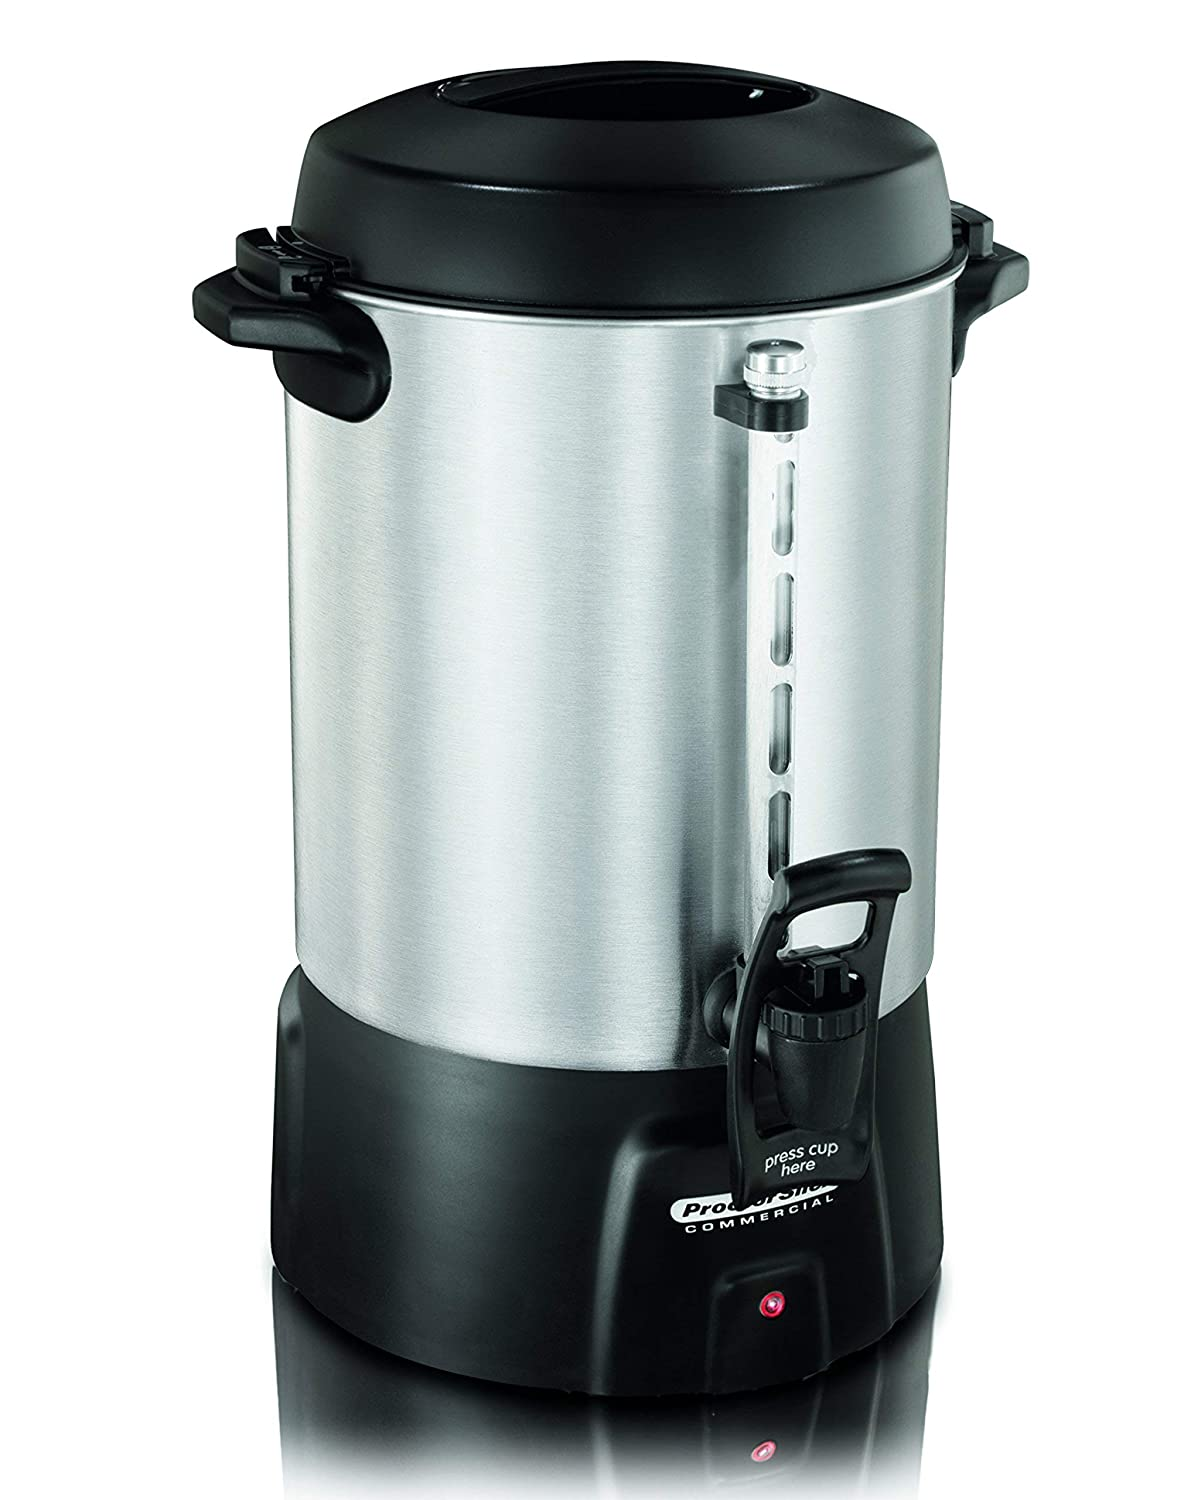 Image of Coffee Urns Proctor Silex 45060 60 Cup Brushed Aluminum Coffee Urn